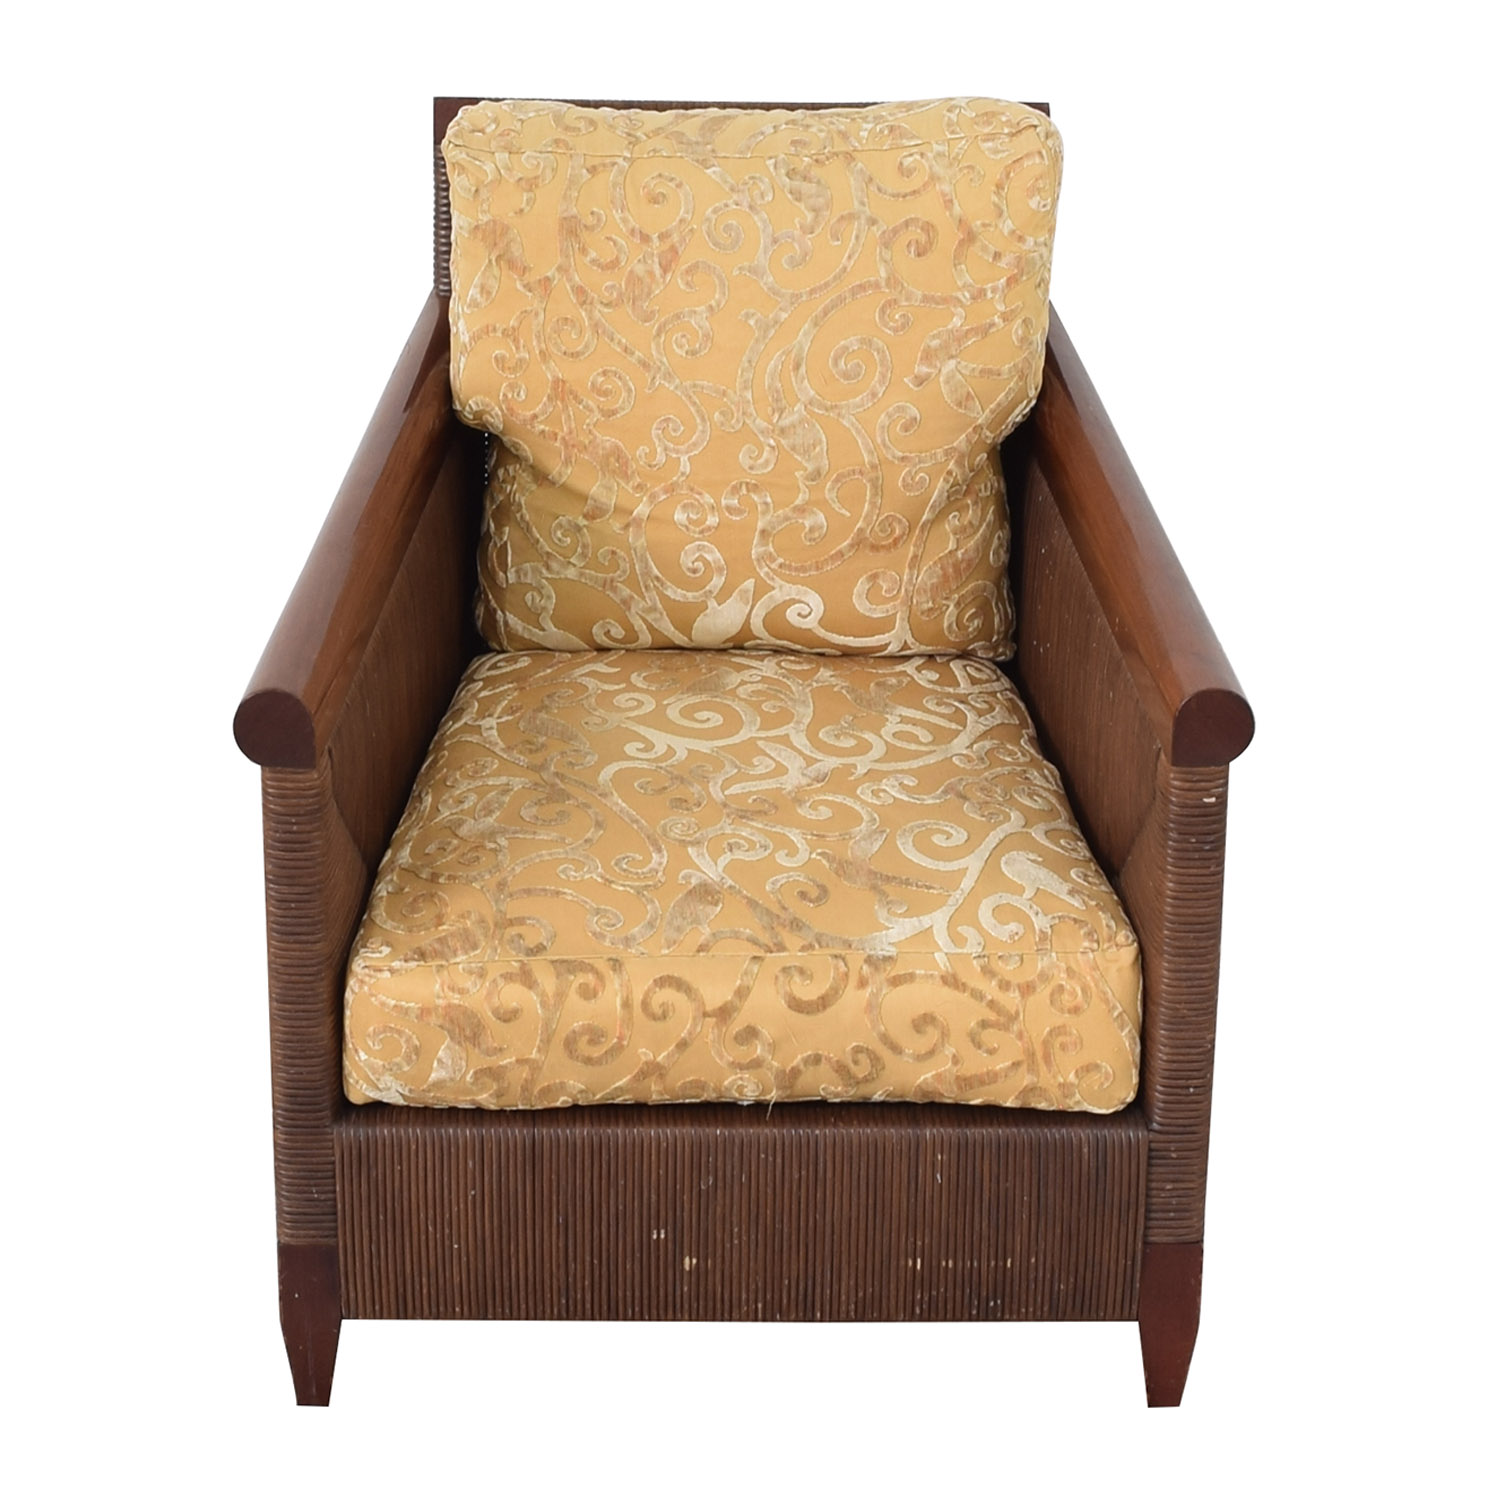 shop Donghia by John Hutton Mahogany and Wicker Lounger Donghia